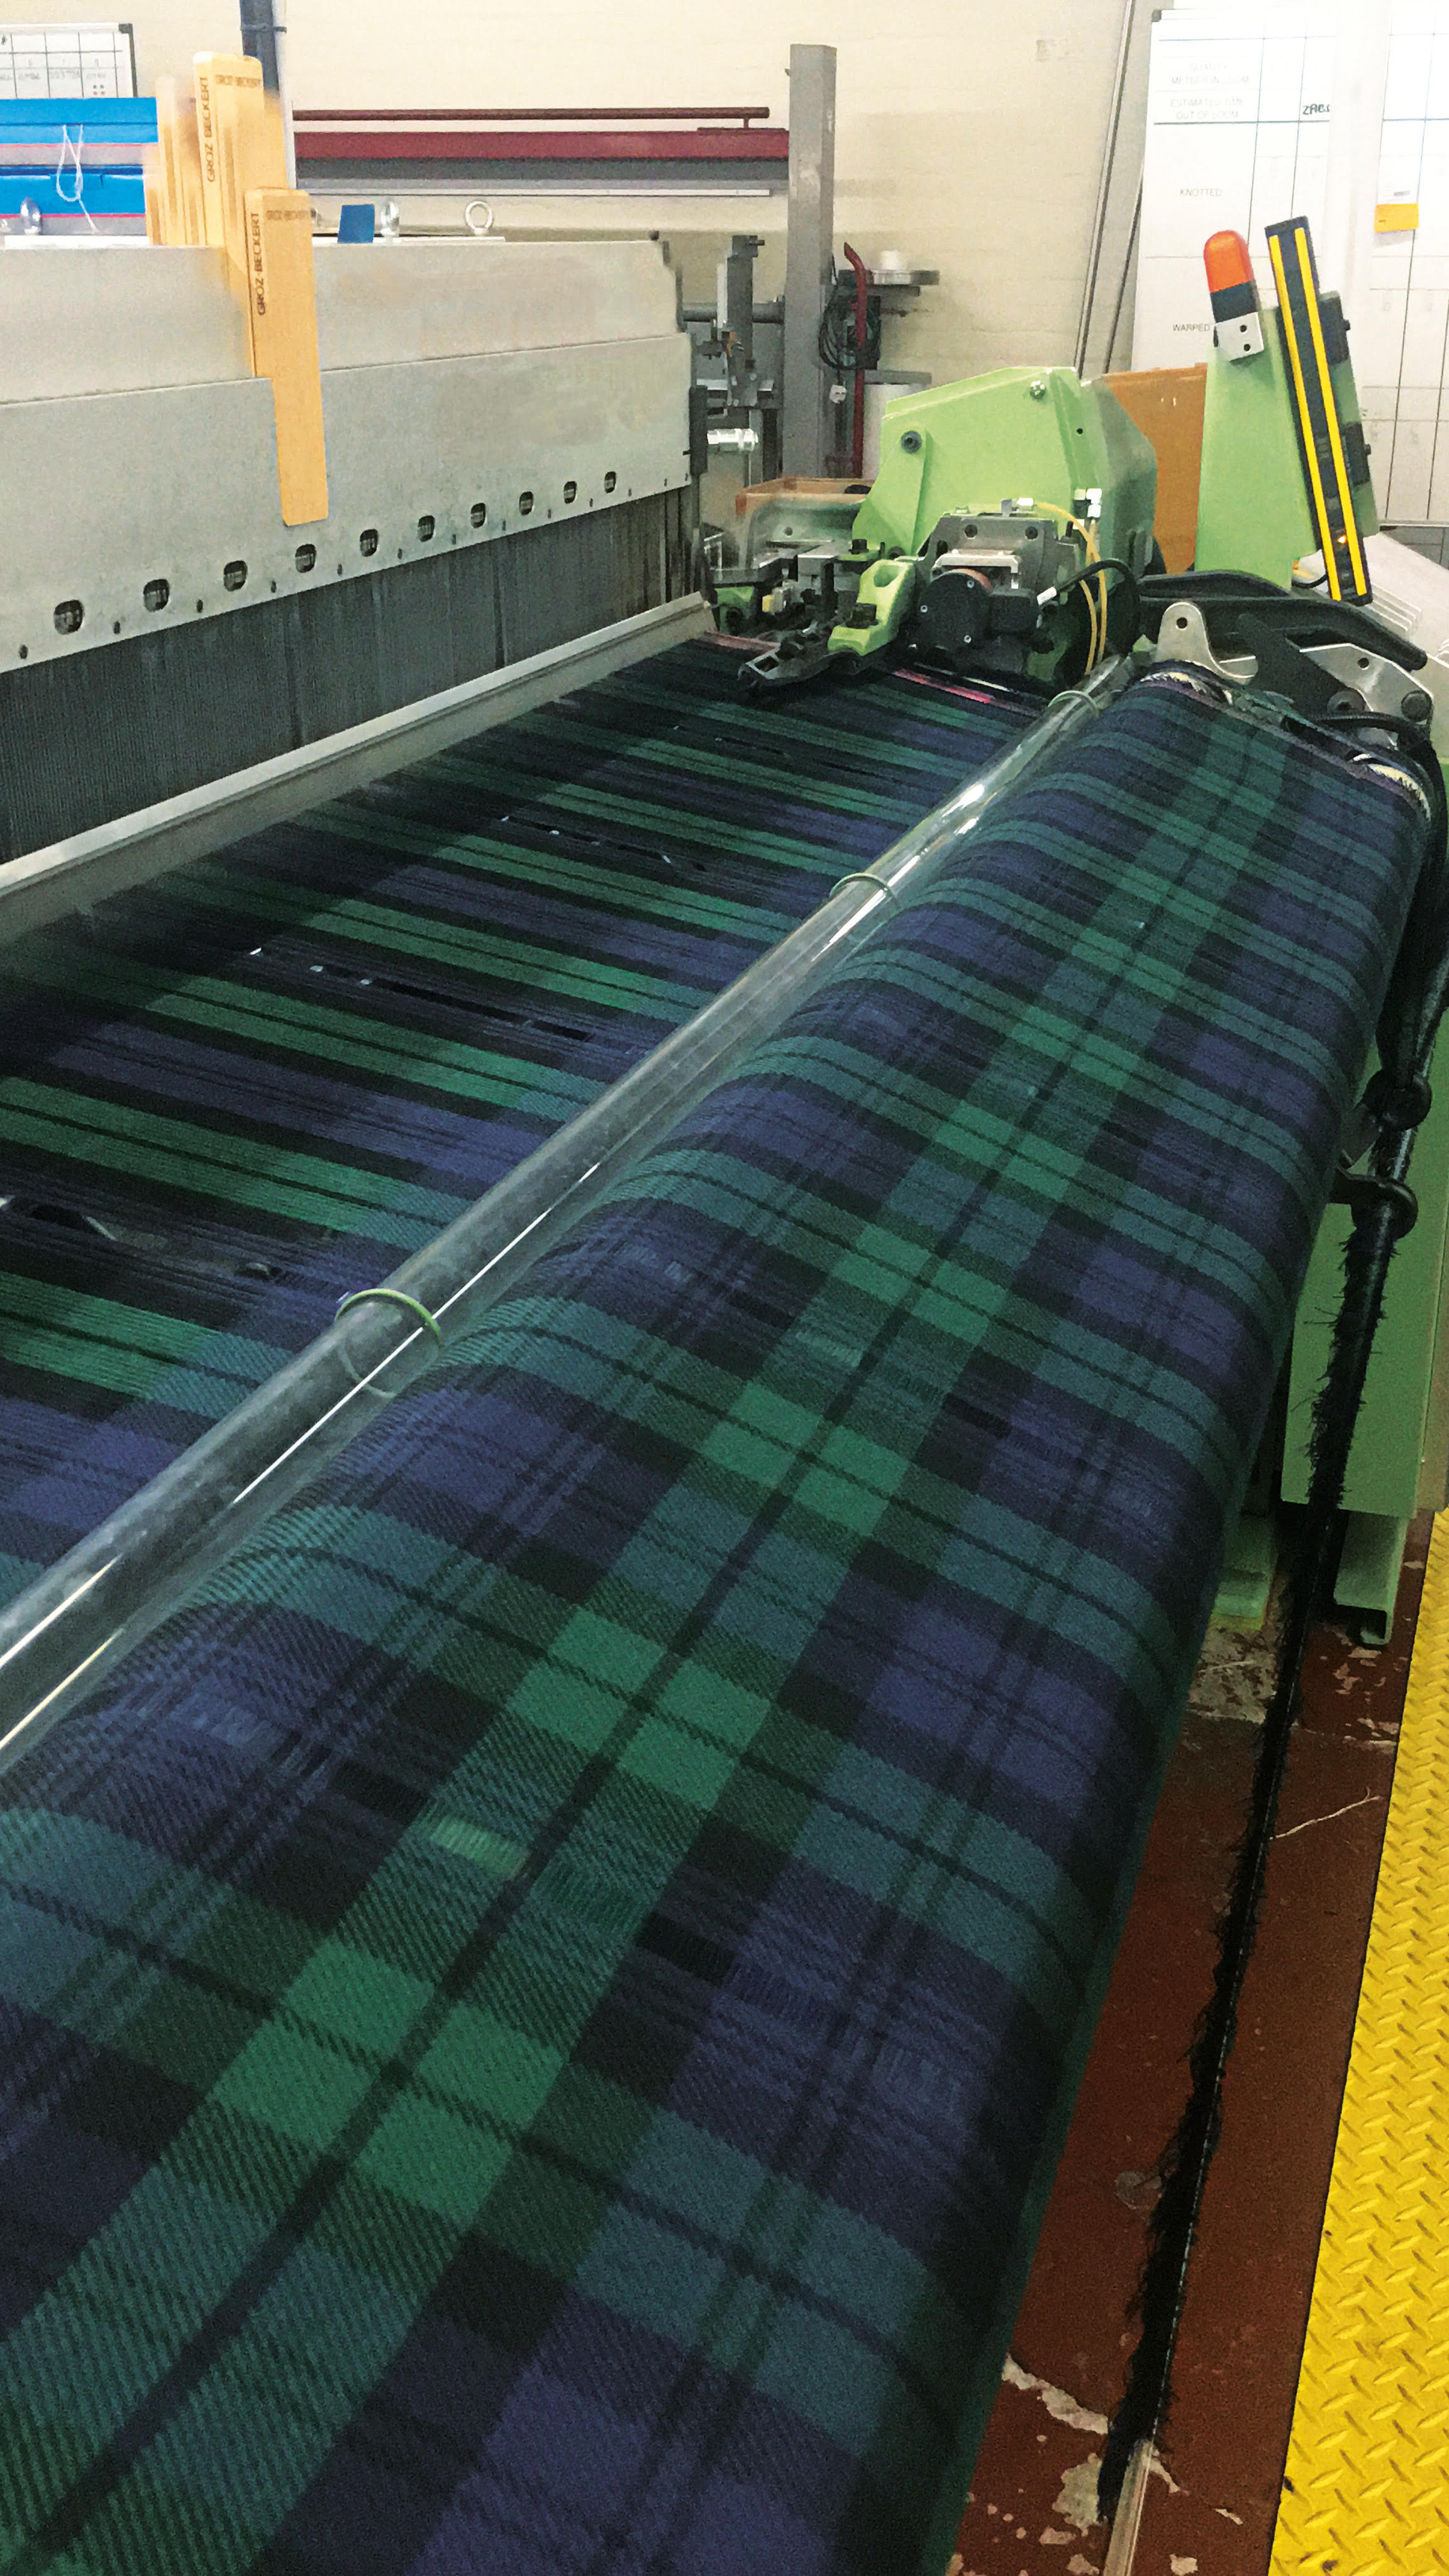 Getting busy in the workshop with the Black Watch Tartan.